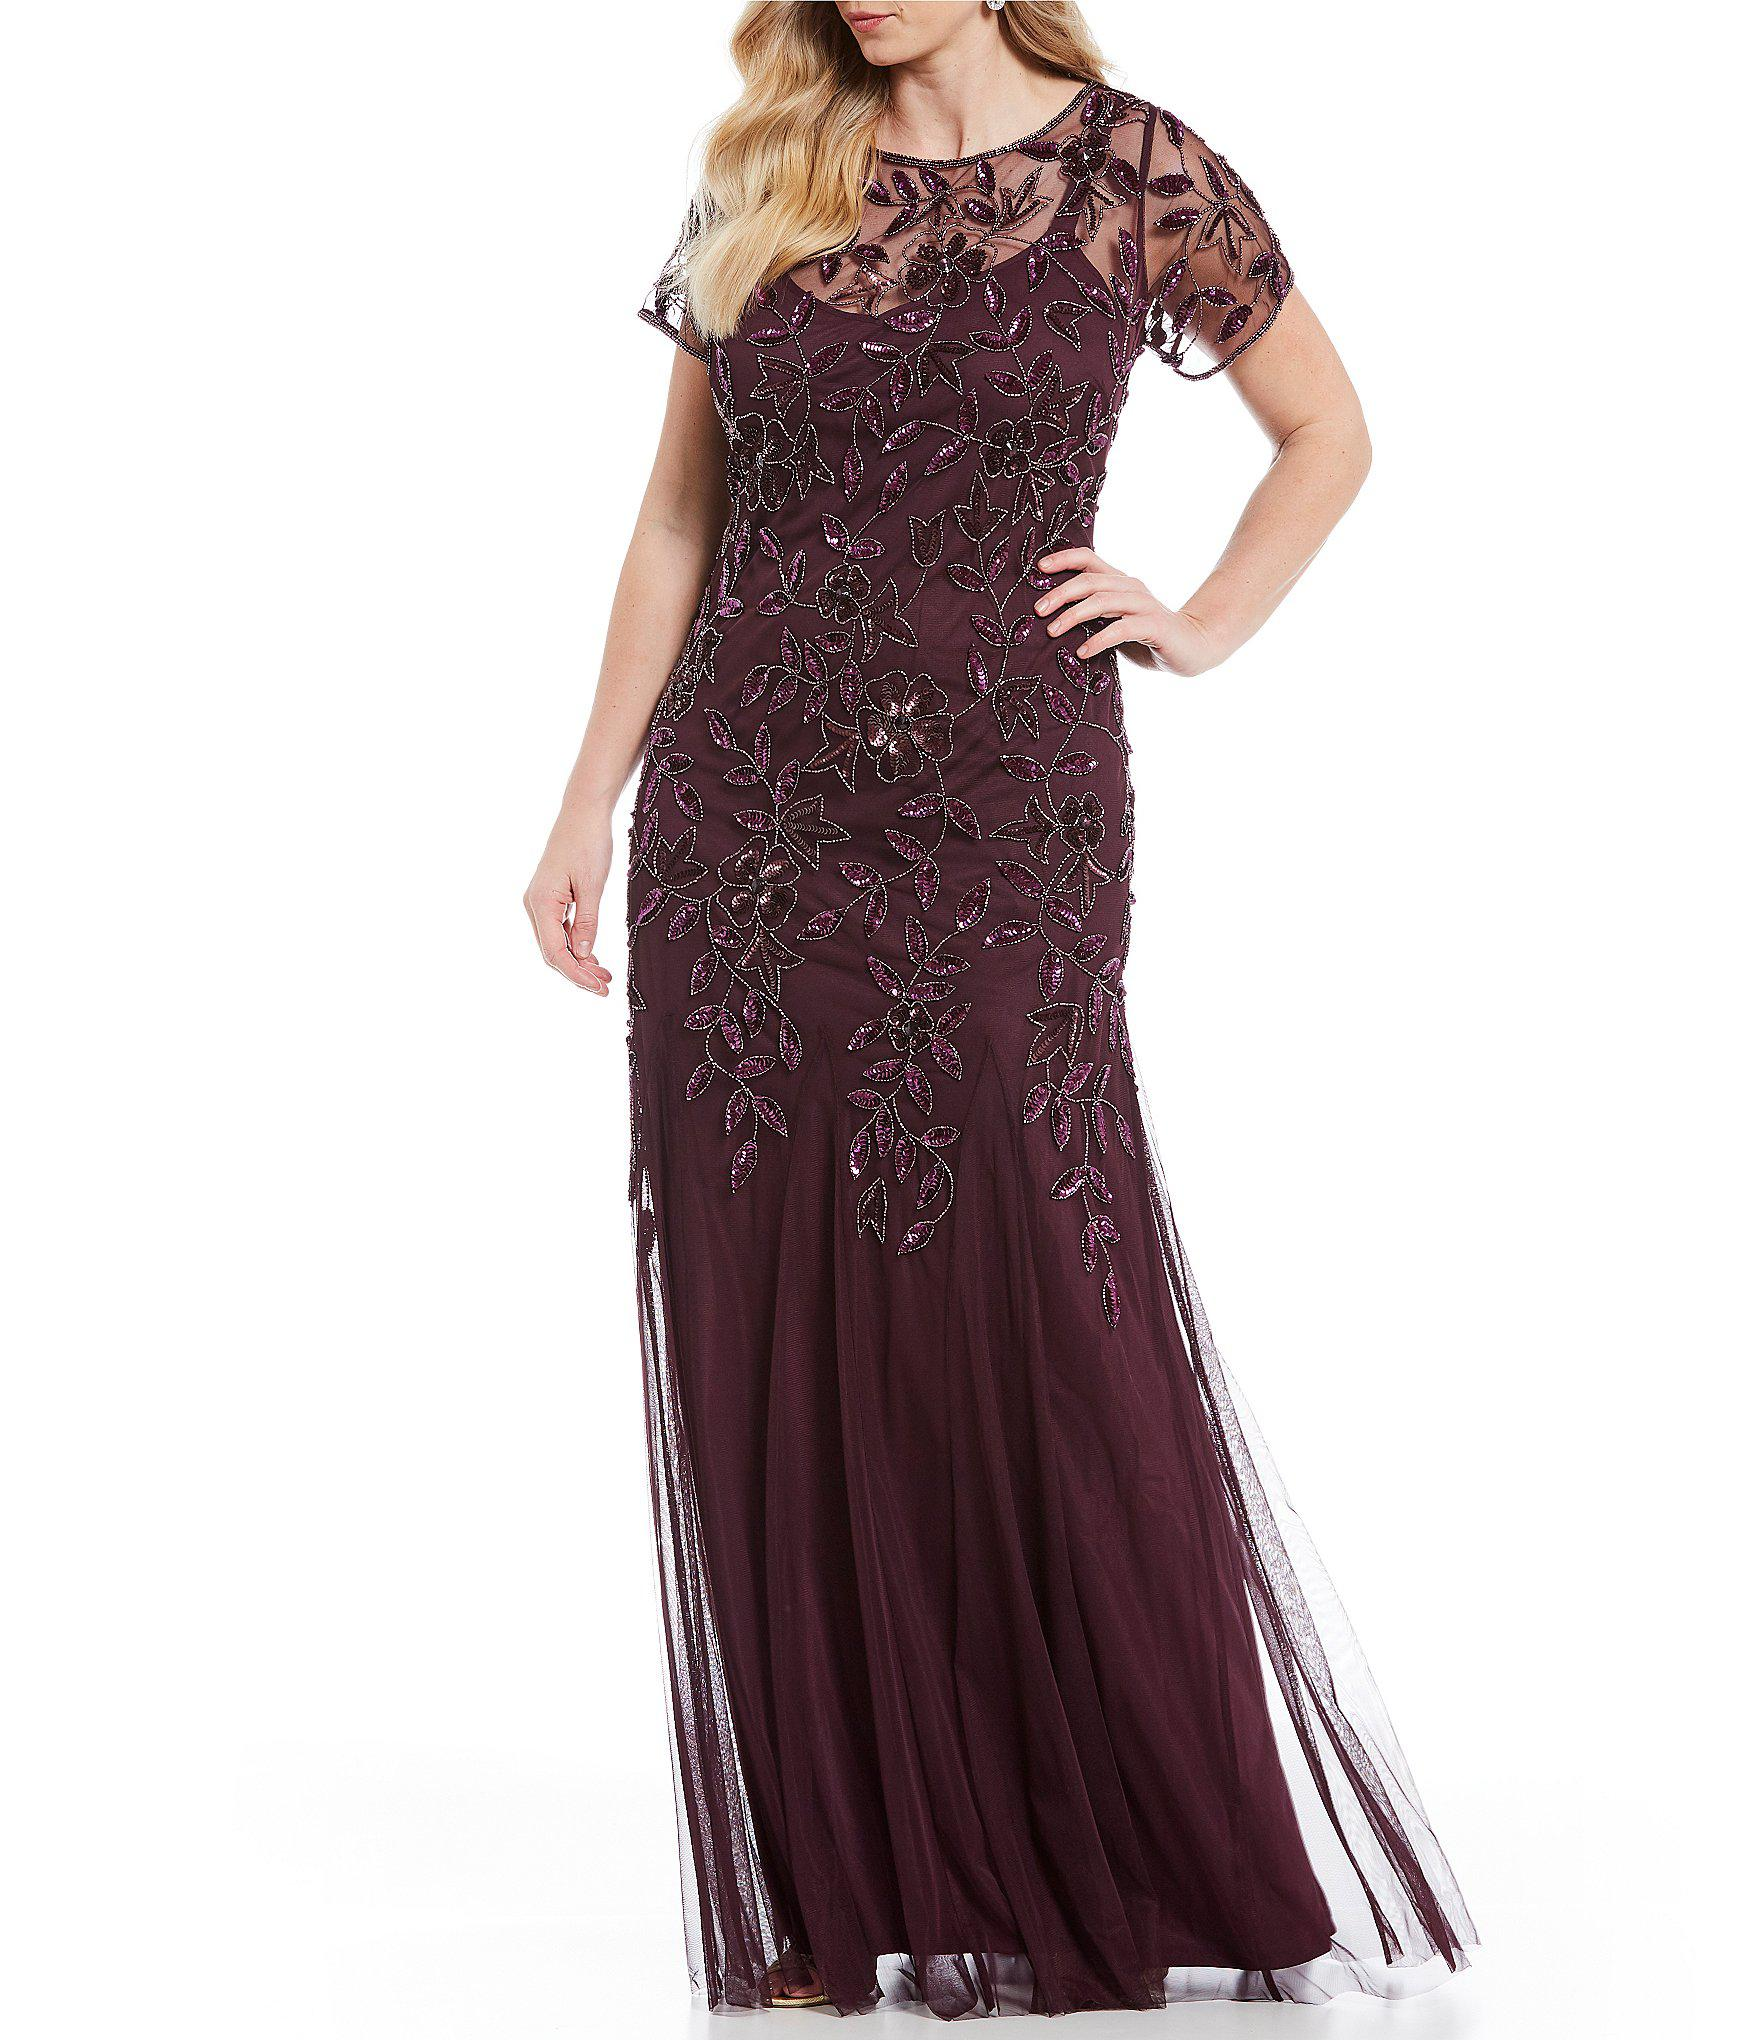 830cb08496322 Lyst - Adrianna Papell Plus Floral Beaded Gown in Purple